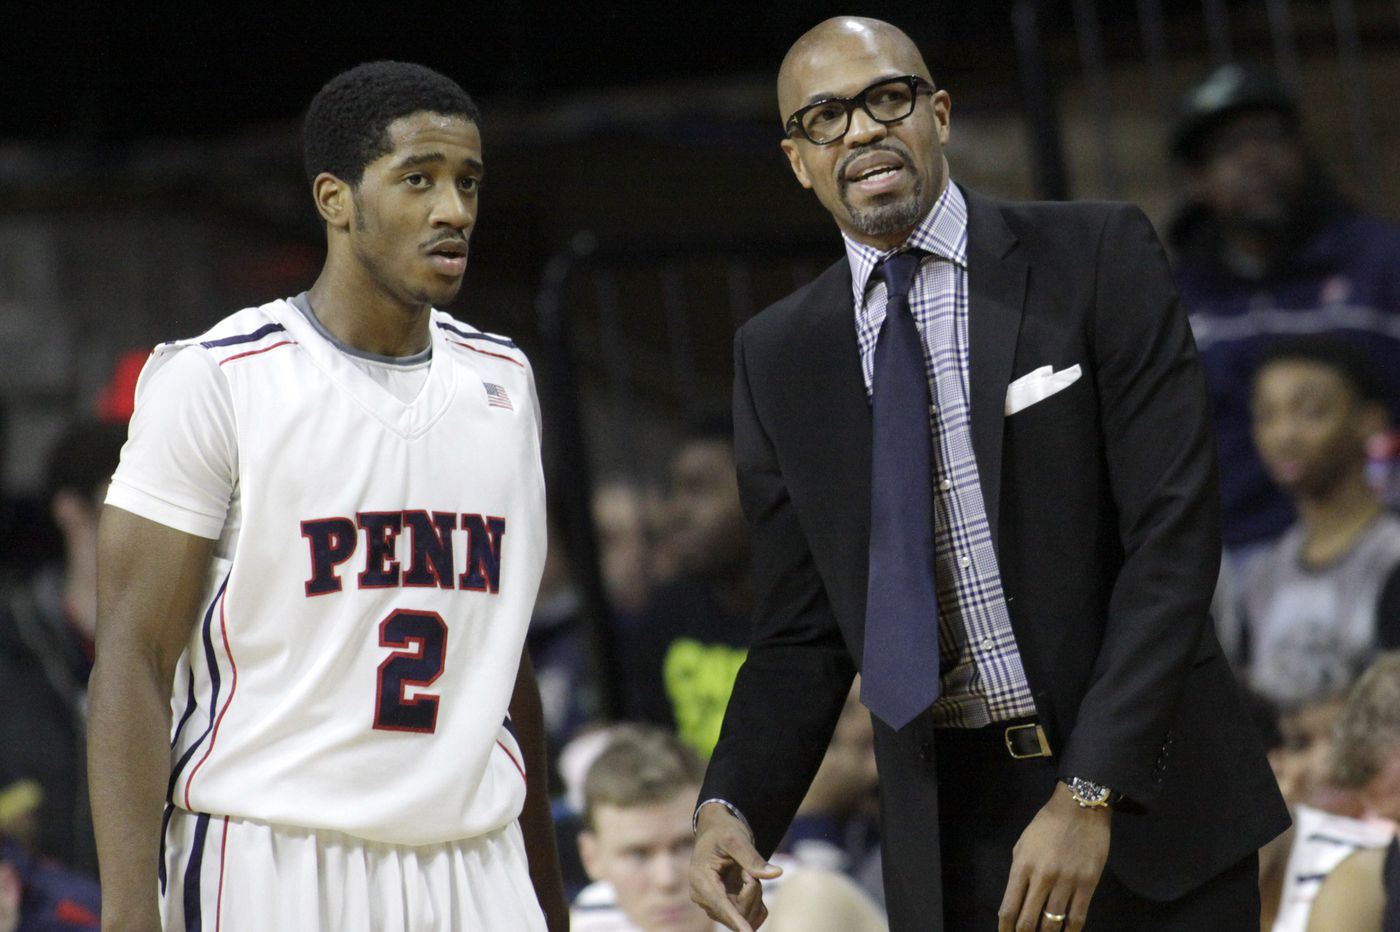 Report: Former Penn coach Jerome Allen said to have taken bribes during his tenure